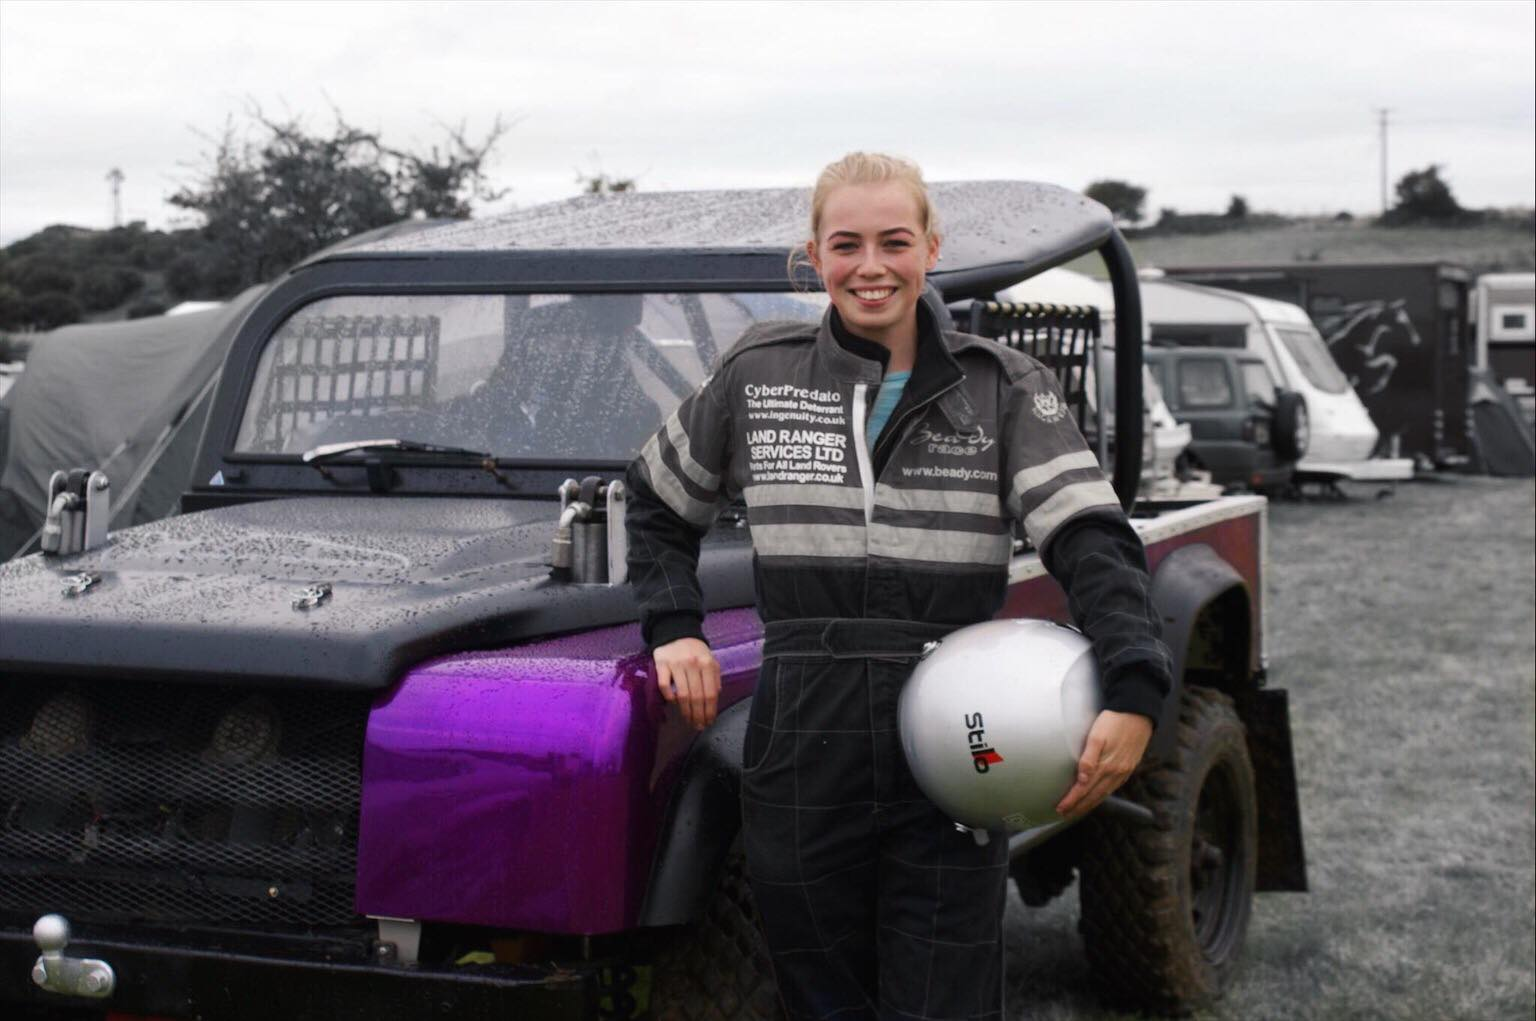 Chloe Jones at Anglesey interclub with North wales land rover club